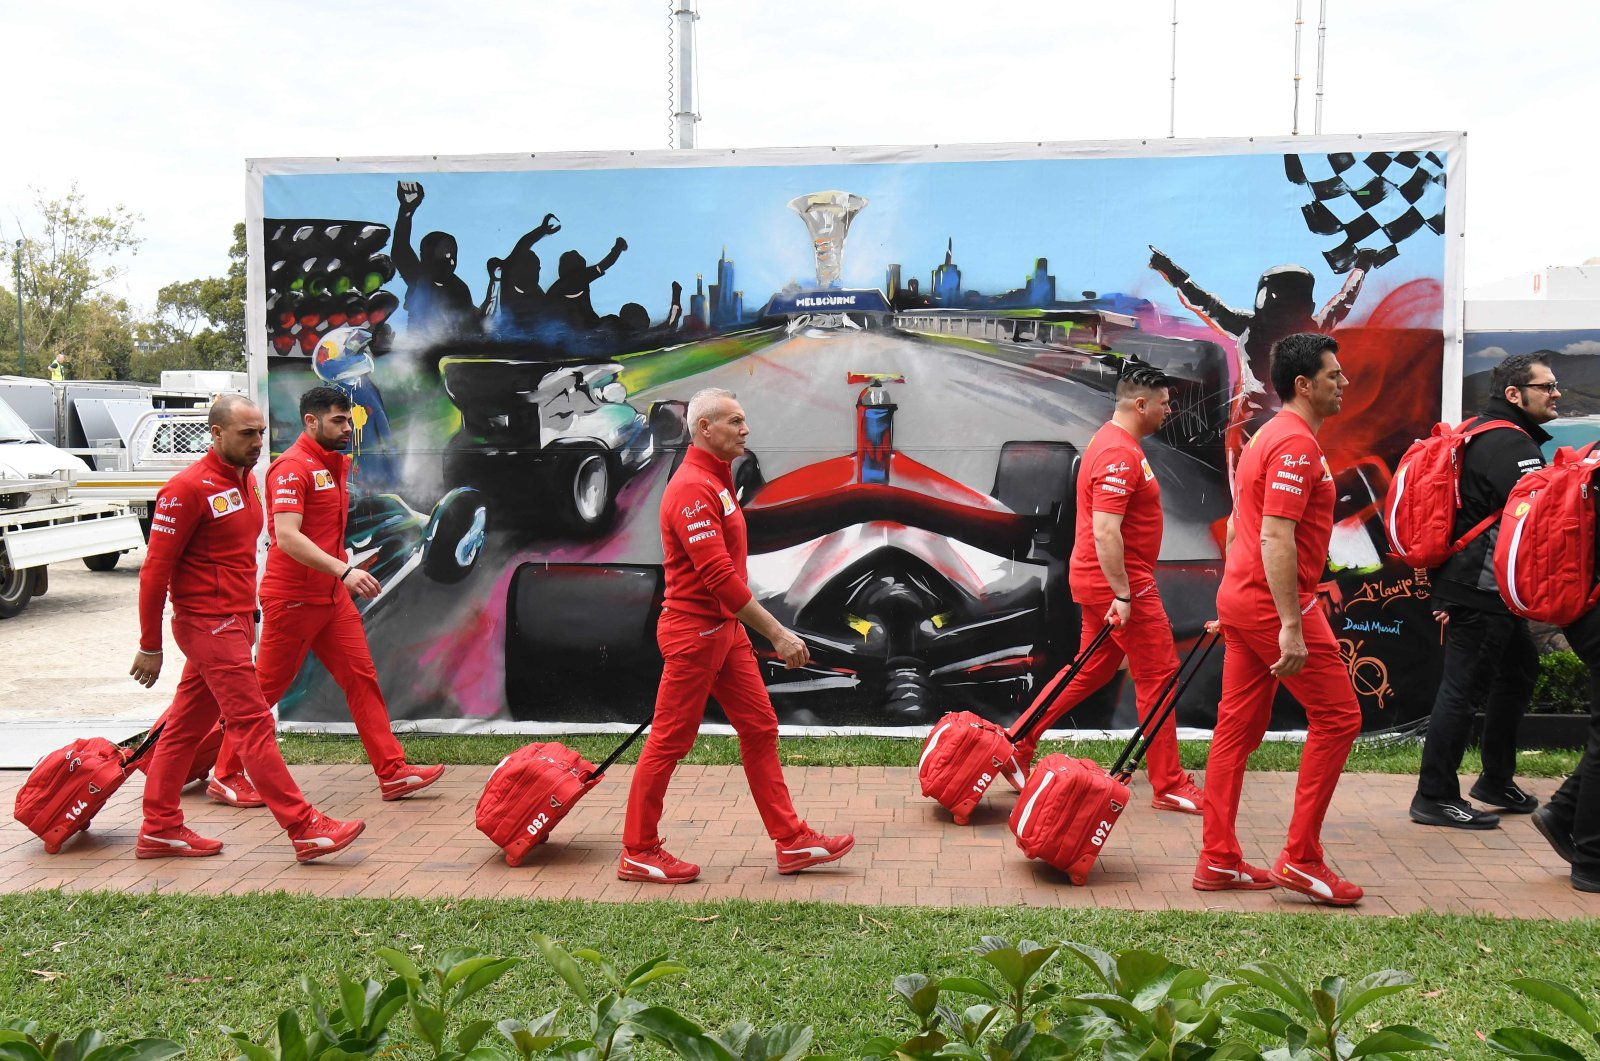 Members of the Ferrari team arrive to pack up their equipment after the Australian Grand Prix was canceled, Melbourne, March 13, 2020. (AFP Photo)